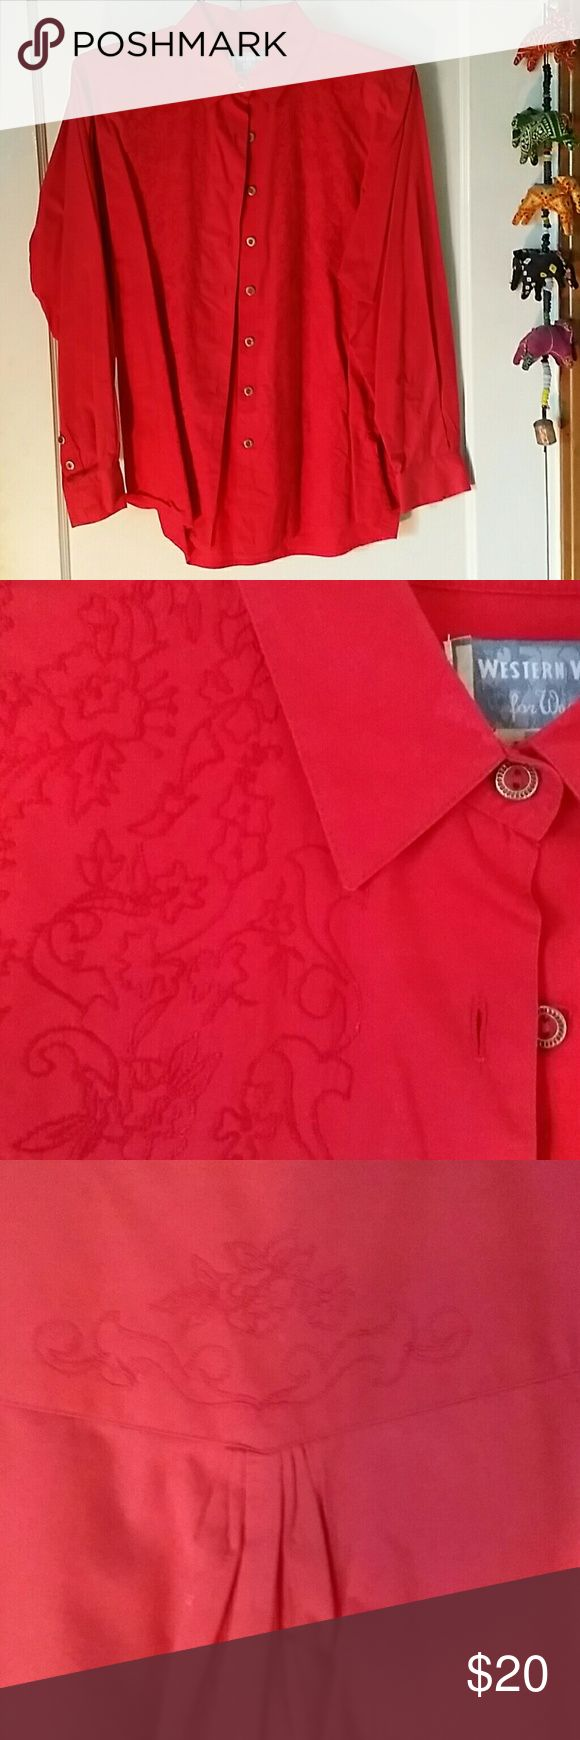 Bright red Wrangler Western Wear for Women shirt Bright jewel tone red. Never worn. Has just been sitting in the closet. 100% cotton Wrangler Tops Button Down Shirts